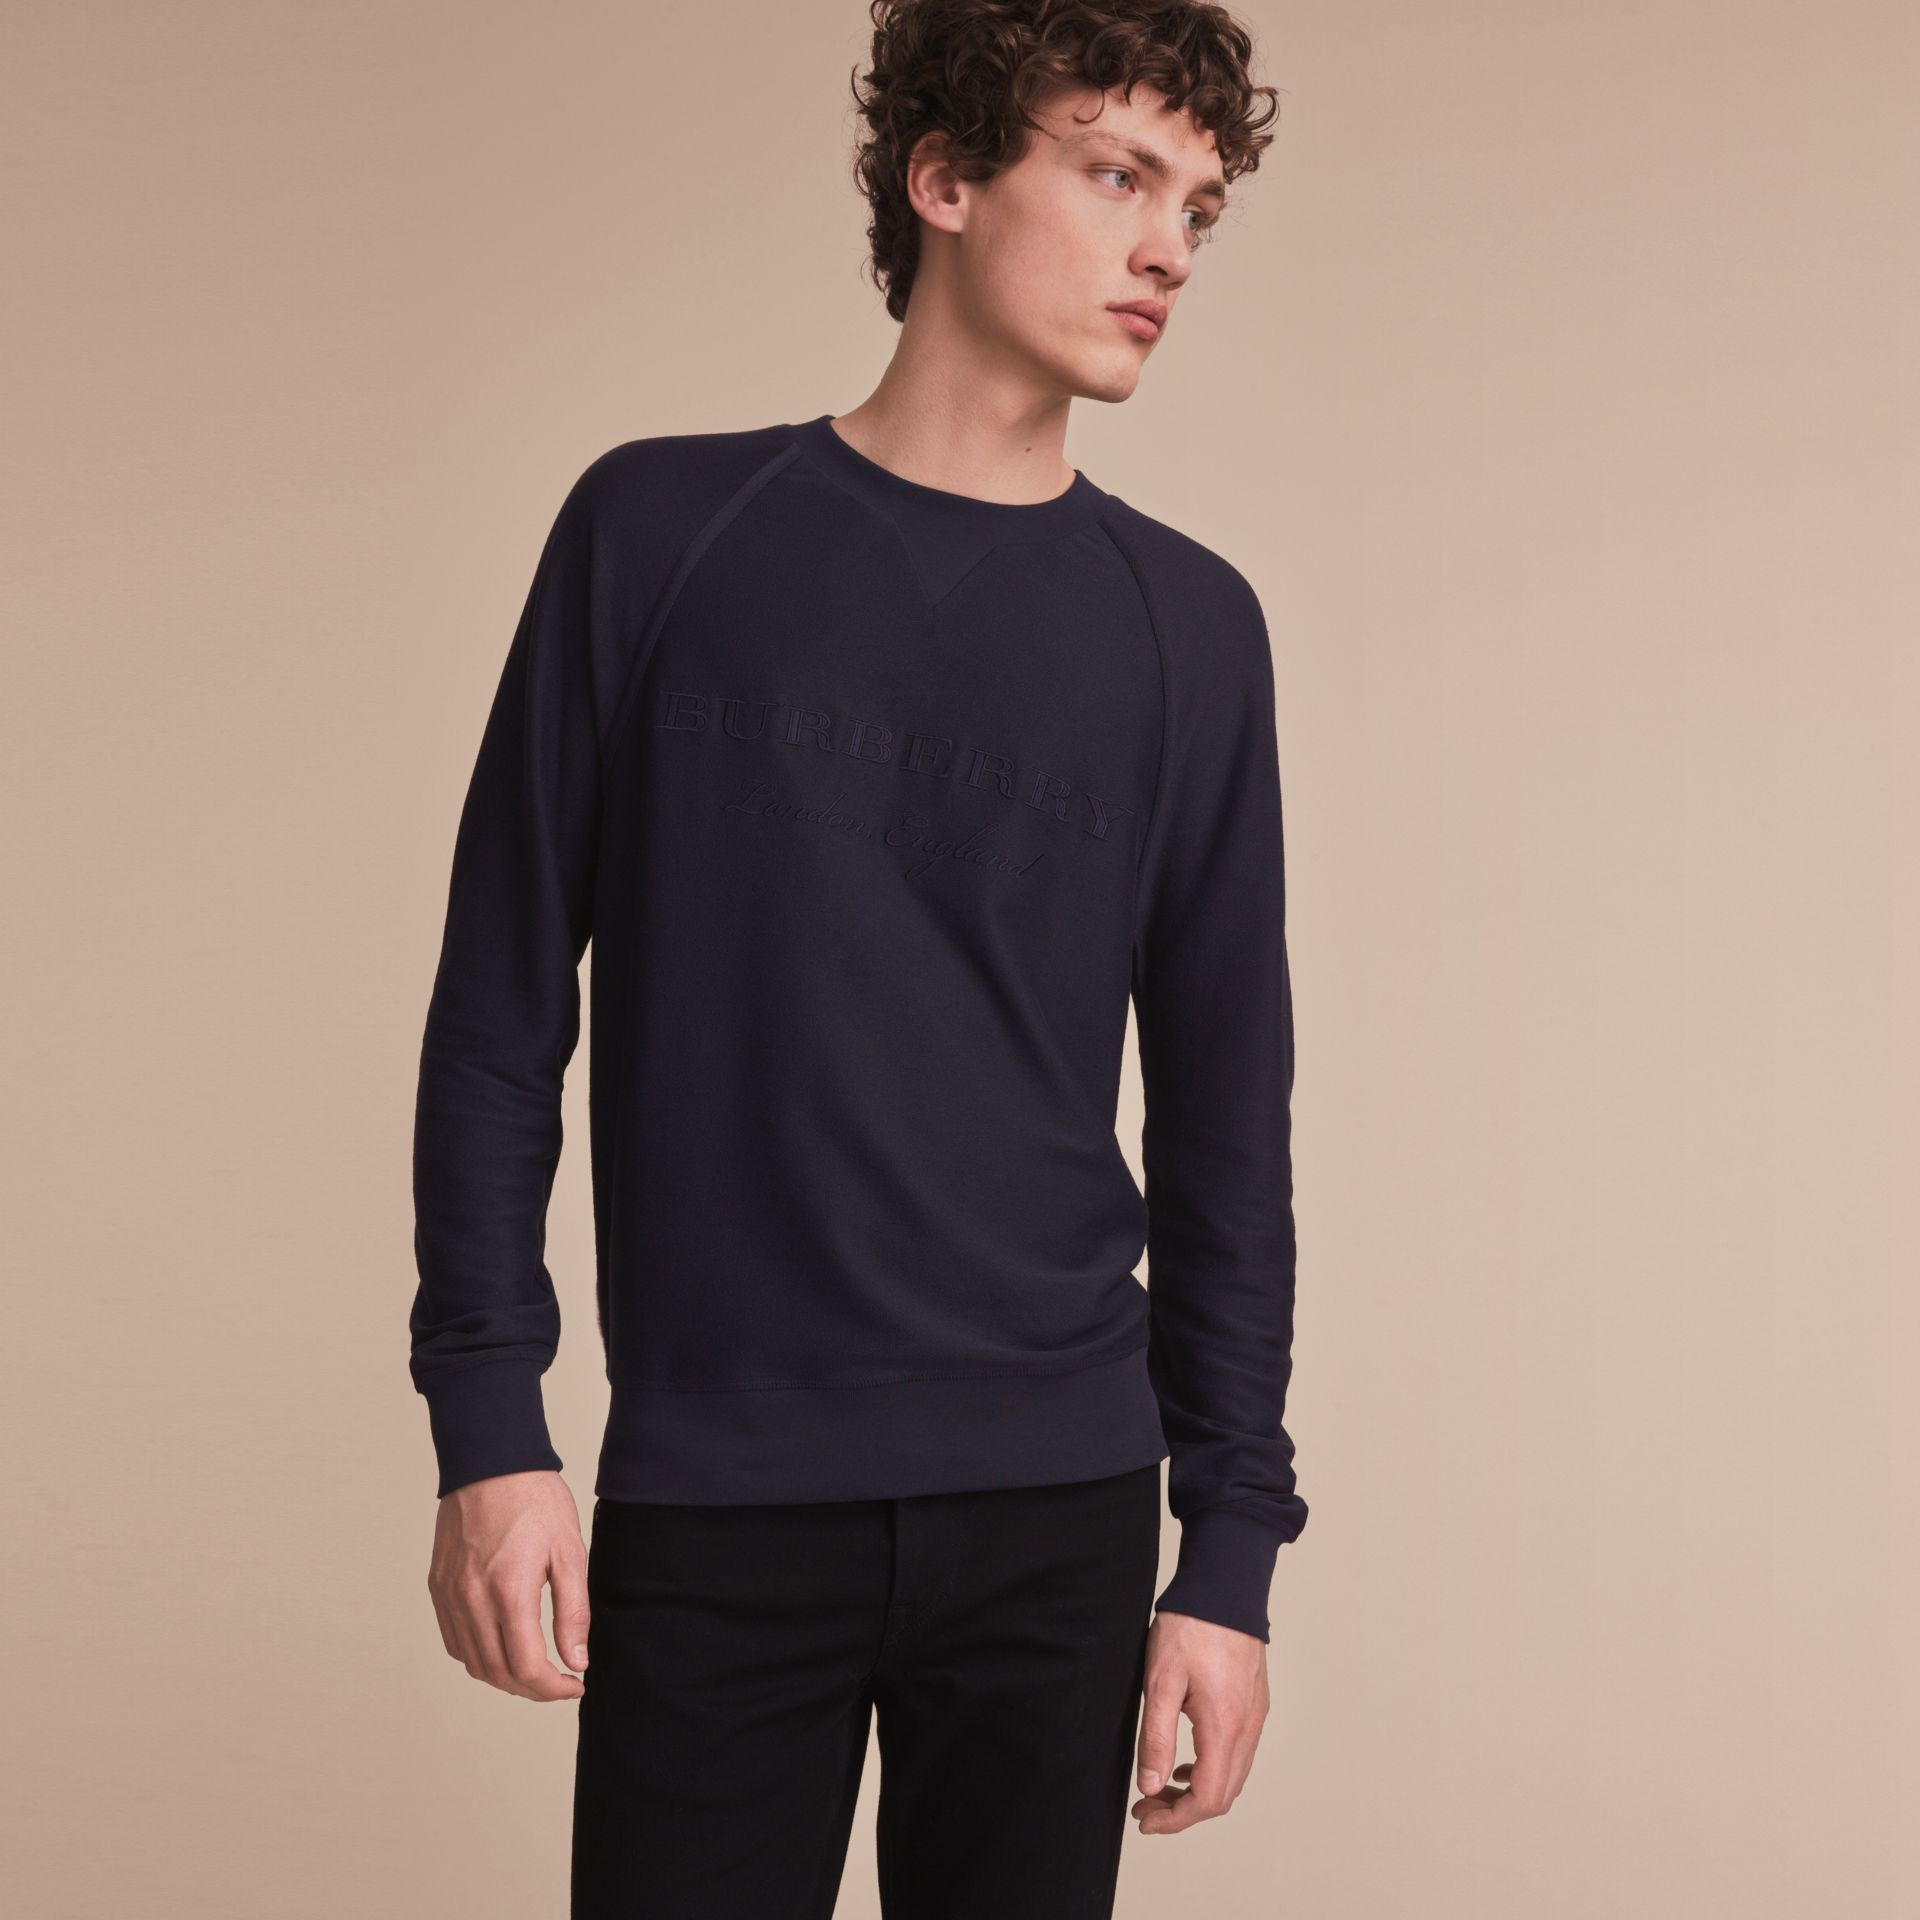 Embroidered Motif Cotton-blend Jersey Sweatshirt in Navy - Men | Burberry - gallery image 6